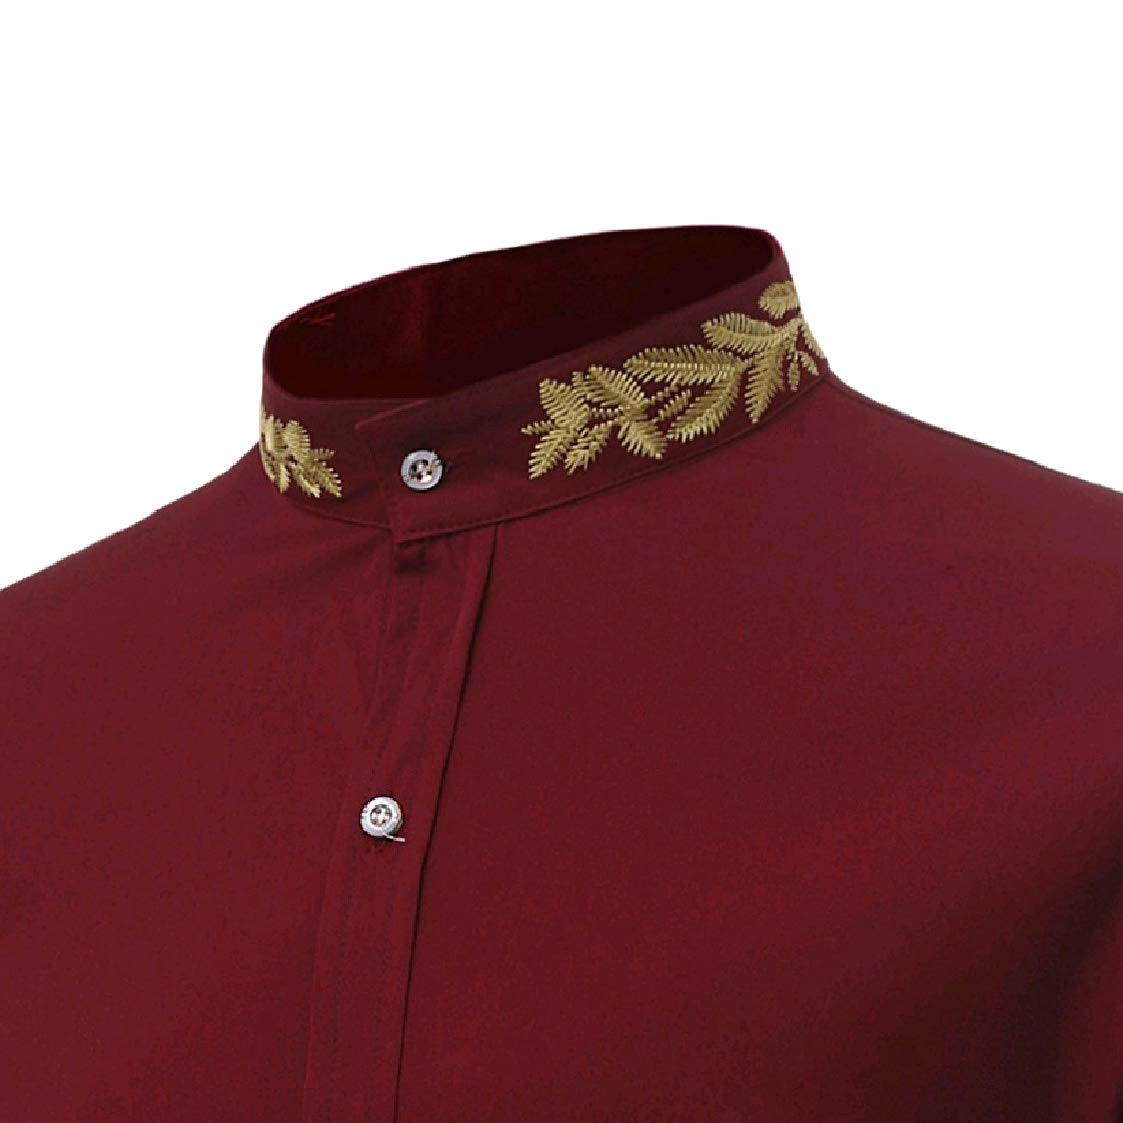 DressU Mens Oversize Silm Business Embroidery Delicate Polo Shirt